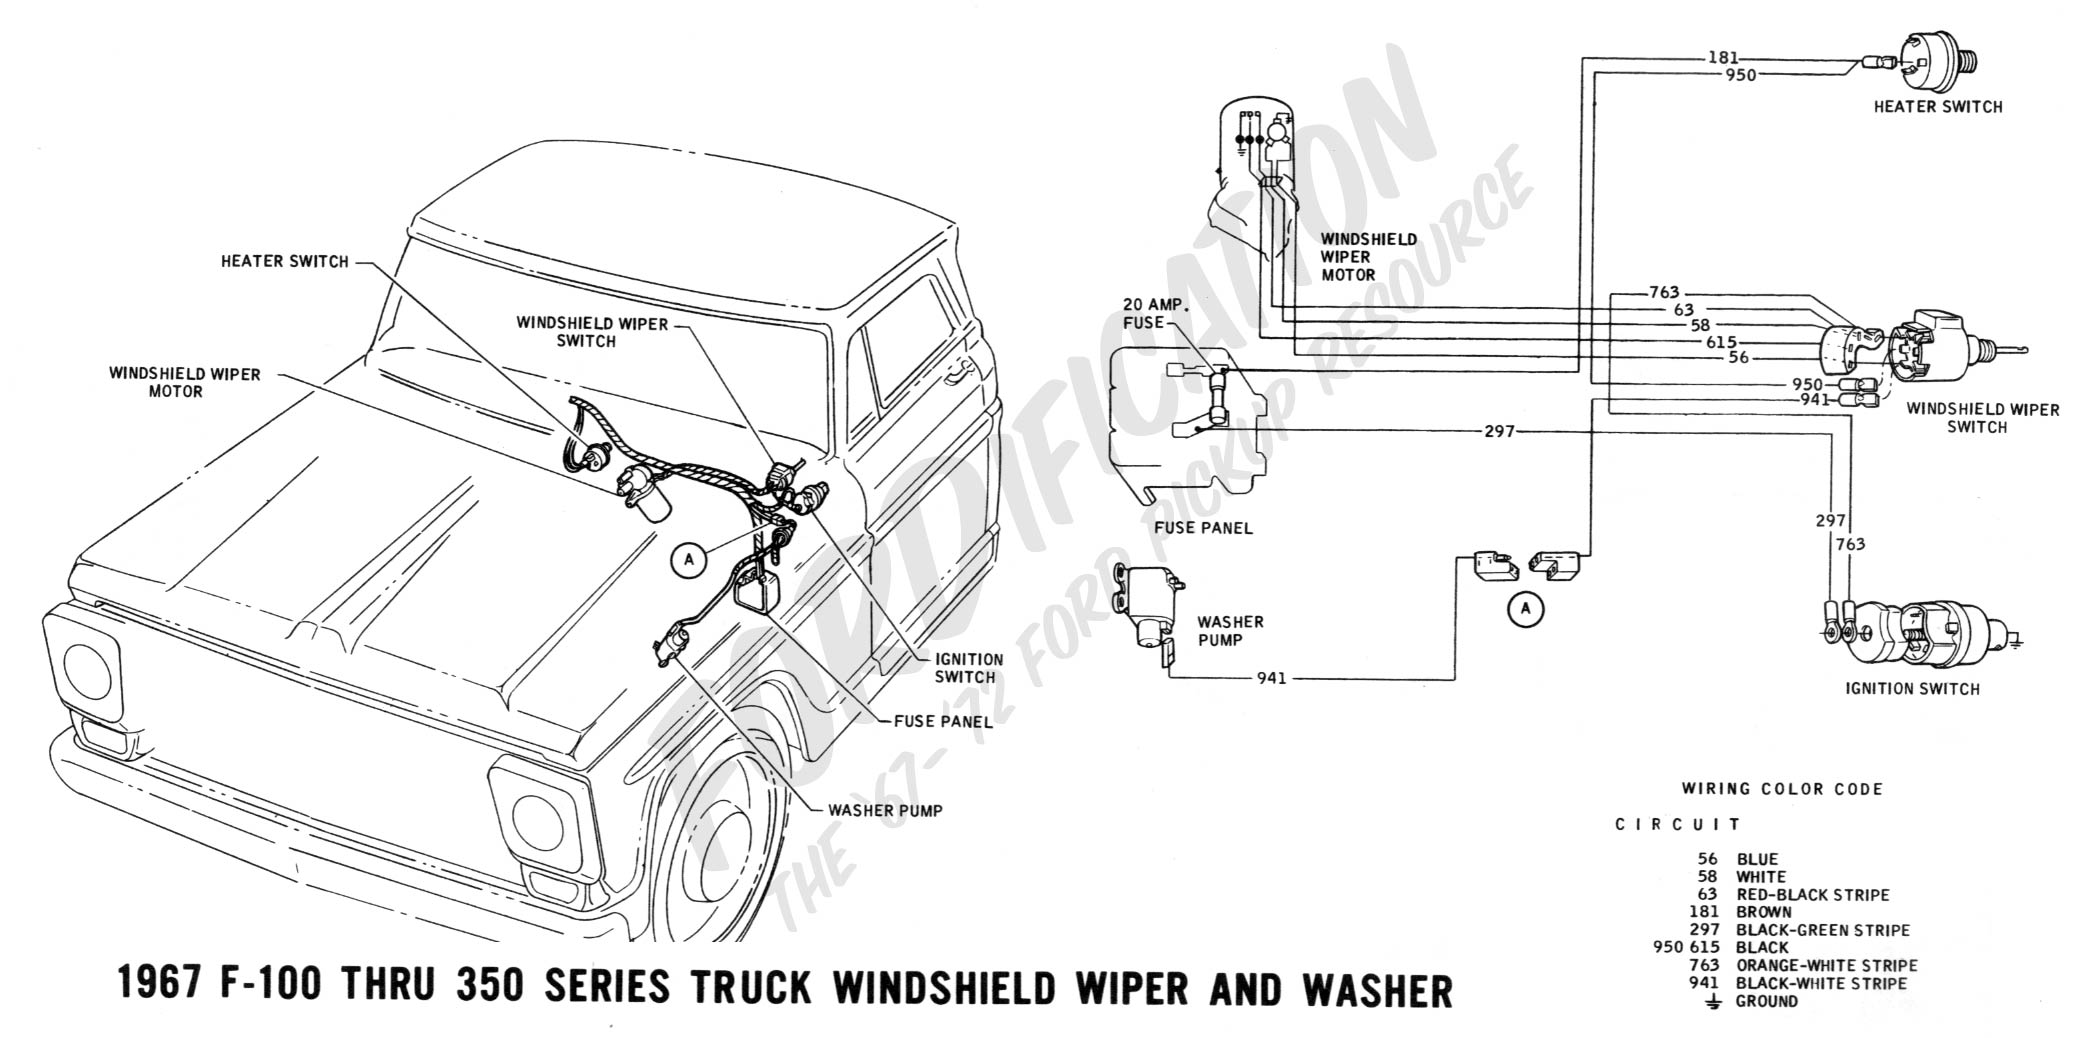 Wiring Diagram For 1955 Ford F100 moreover Catalog3 likewise T4904393 Need a 1967 429 cadillac engine diagram besides Mechanical 1955 66 as well 511496 Clutch Pedal Adjustment. on 1956 ford f100 wiring diagram